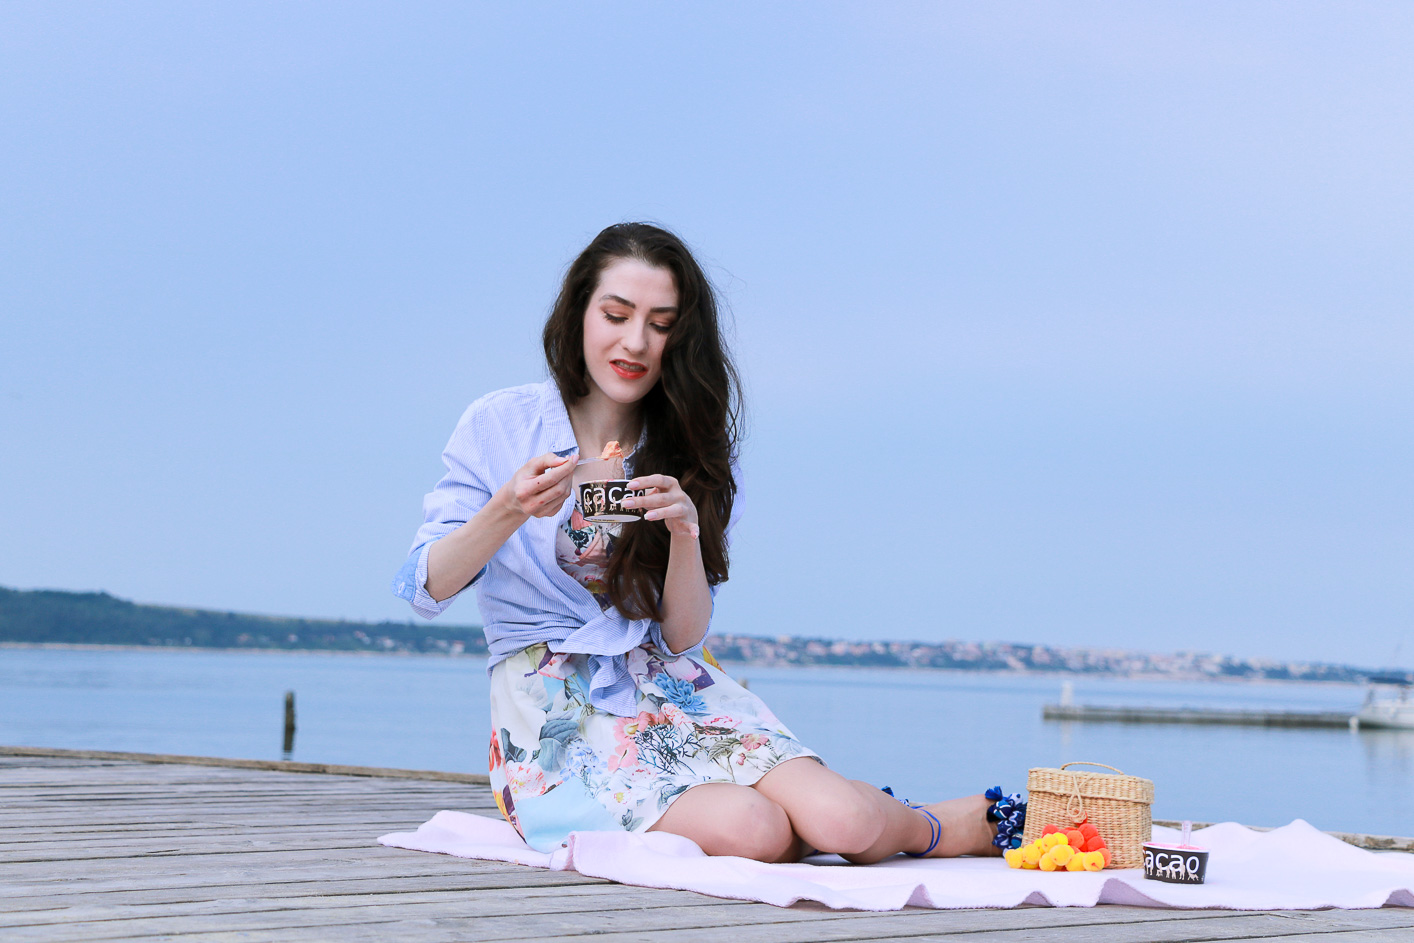 Fashion blogger Veronika Lipar of Brunette From Wall Street on her first summer picnic by the Adriatic sea eating ice cream on the pink picnic blanket wearing floral summer dress, a shirt with a knot and raffia basket bag